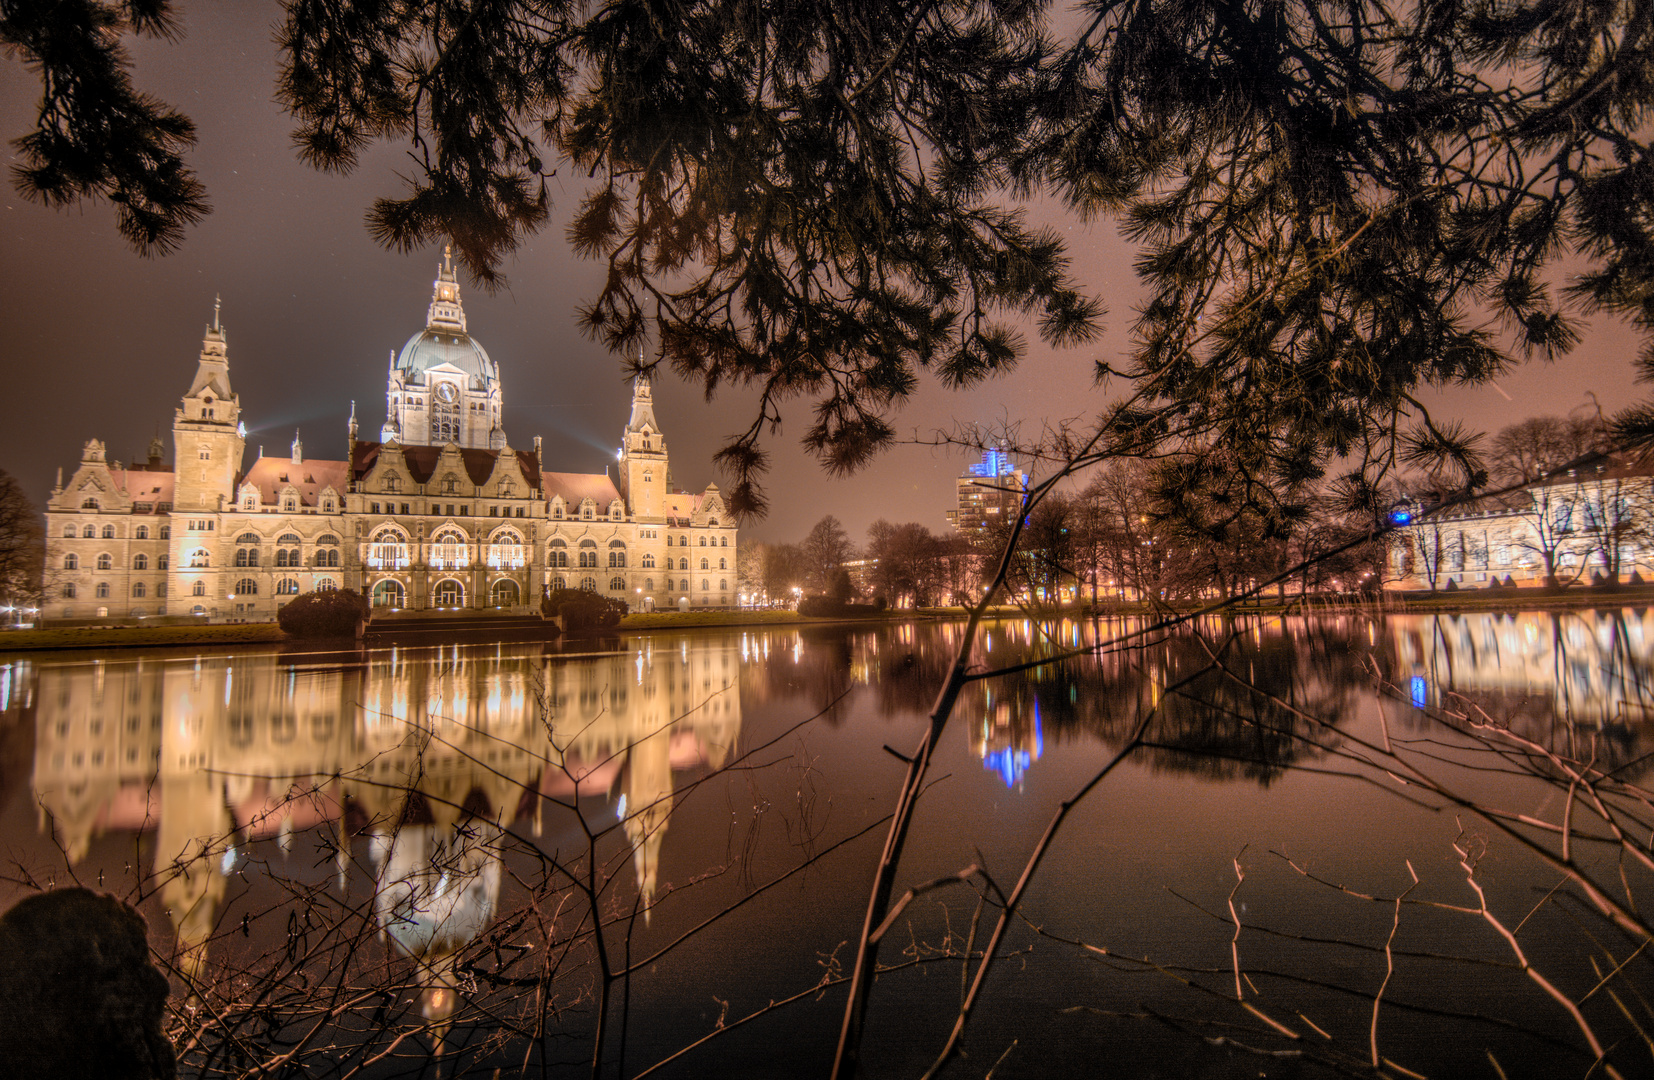 Neues Rathaus Hannover HDR